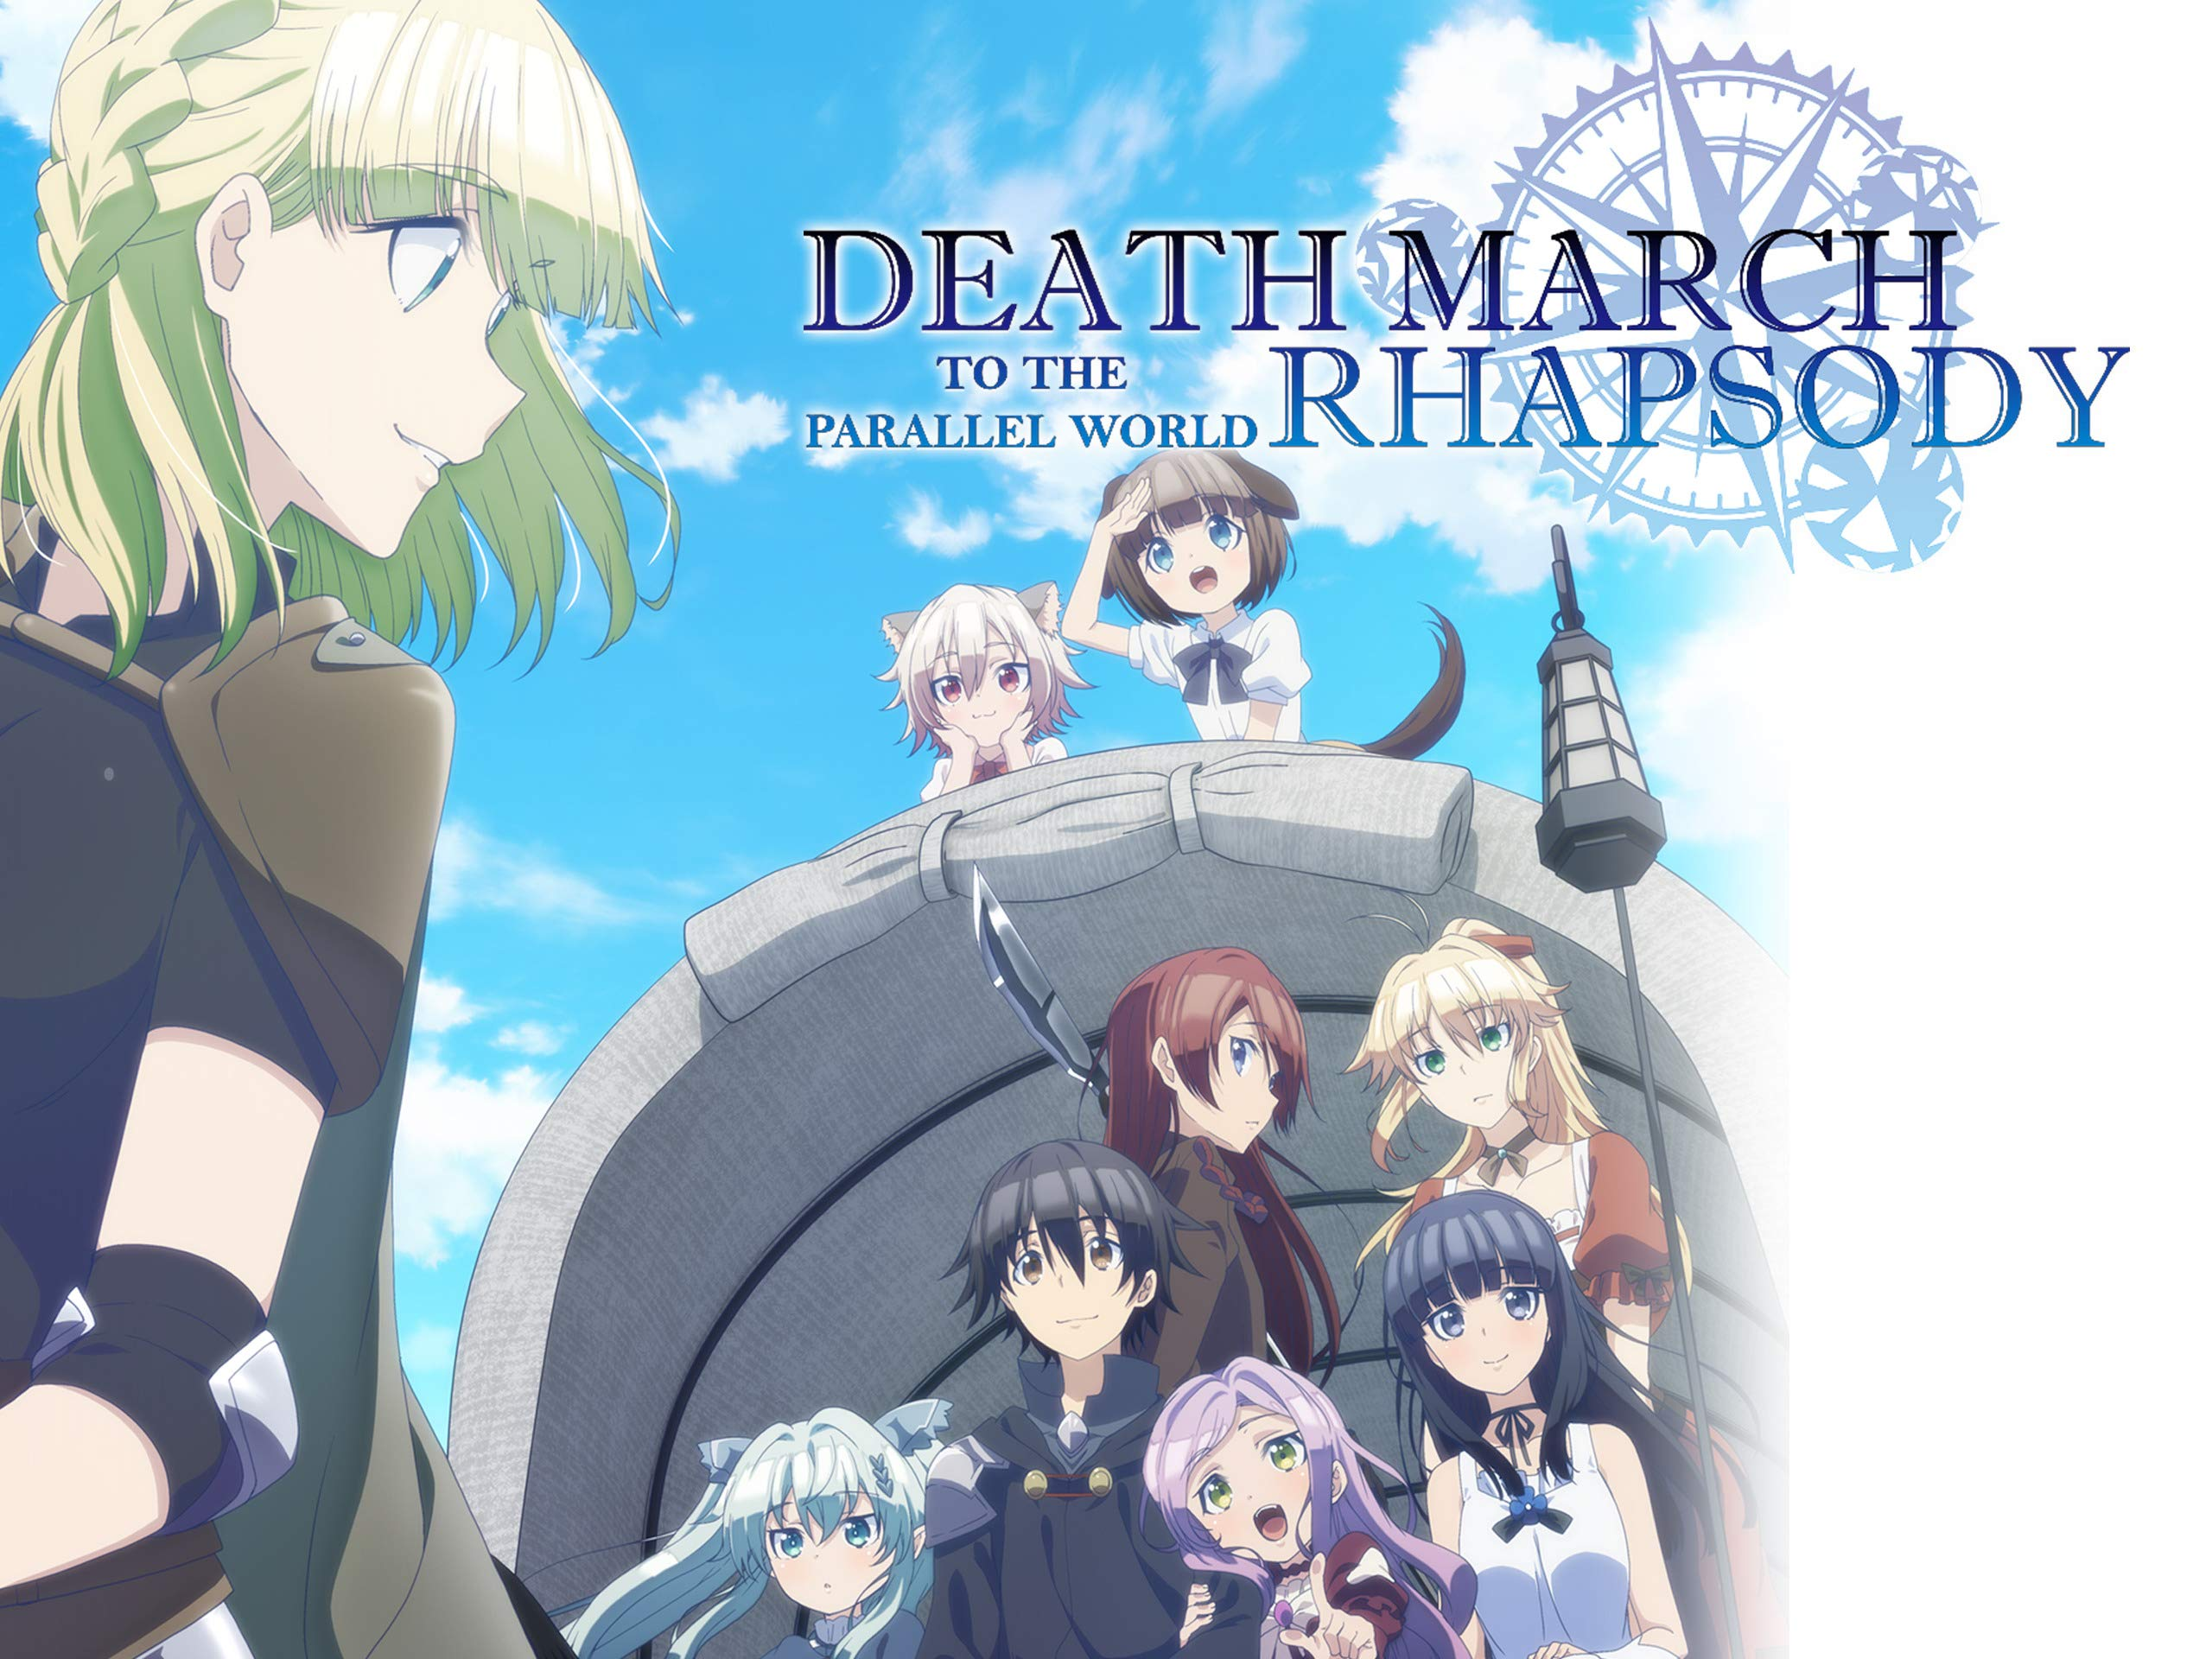 Watch Death March To The Parallel World Rhapsody Original